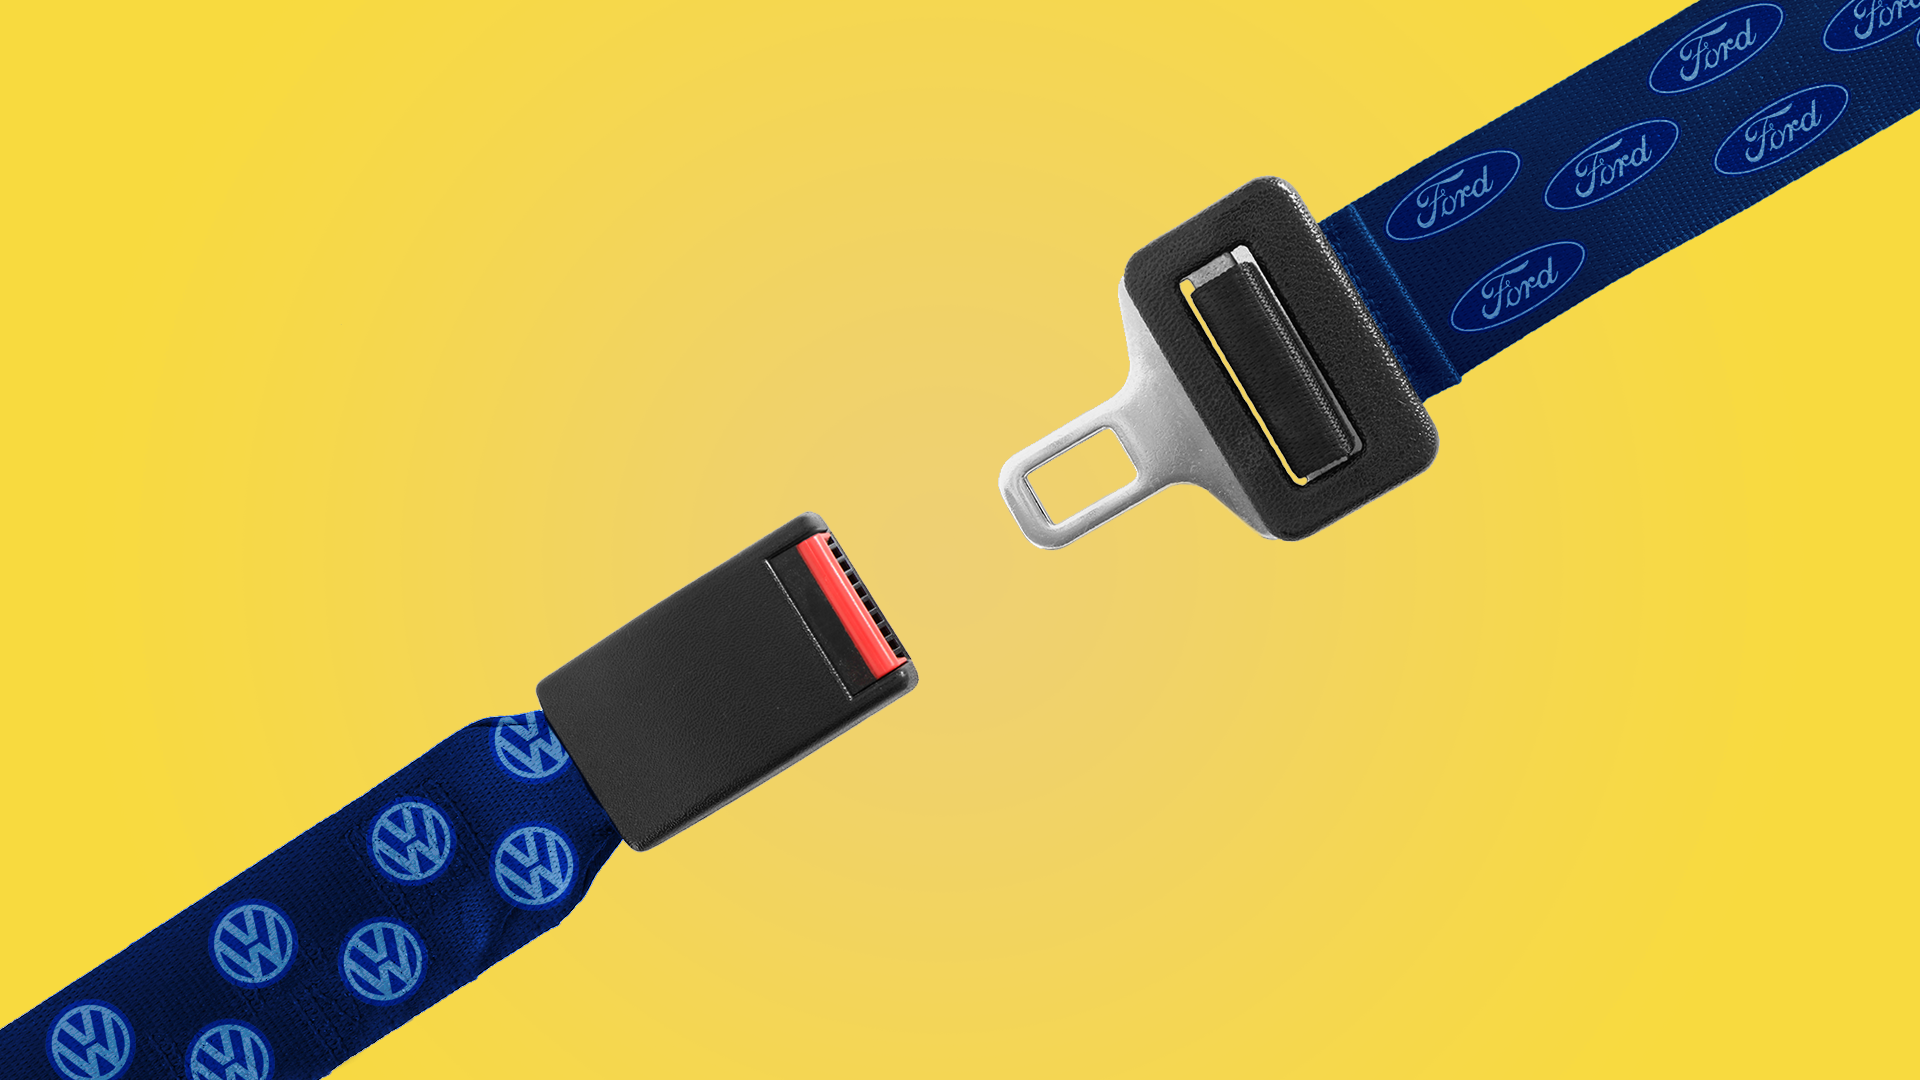 Illustration of a seat belt coming together with one part of the belt covered in a Ford logo pattern and the other in a VW logo pattern.